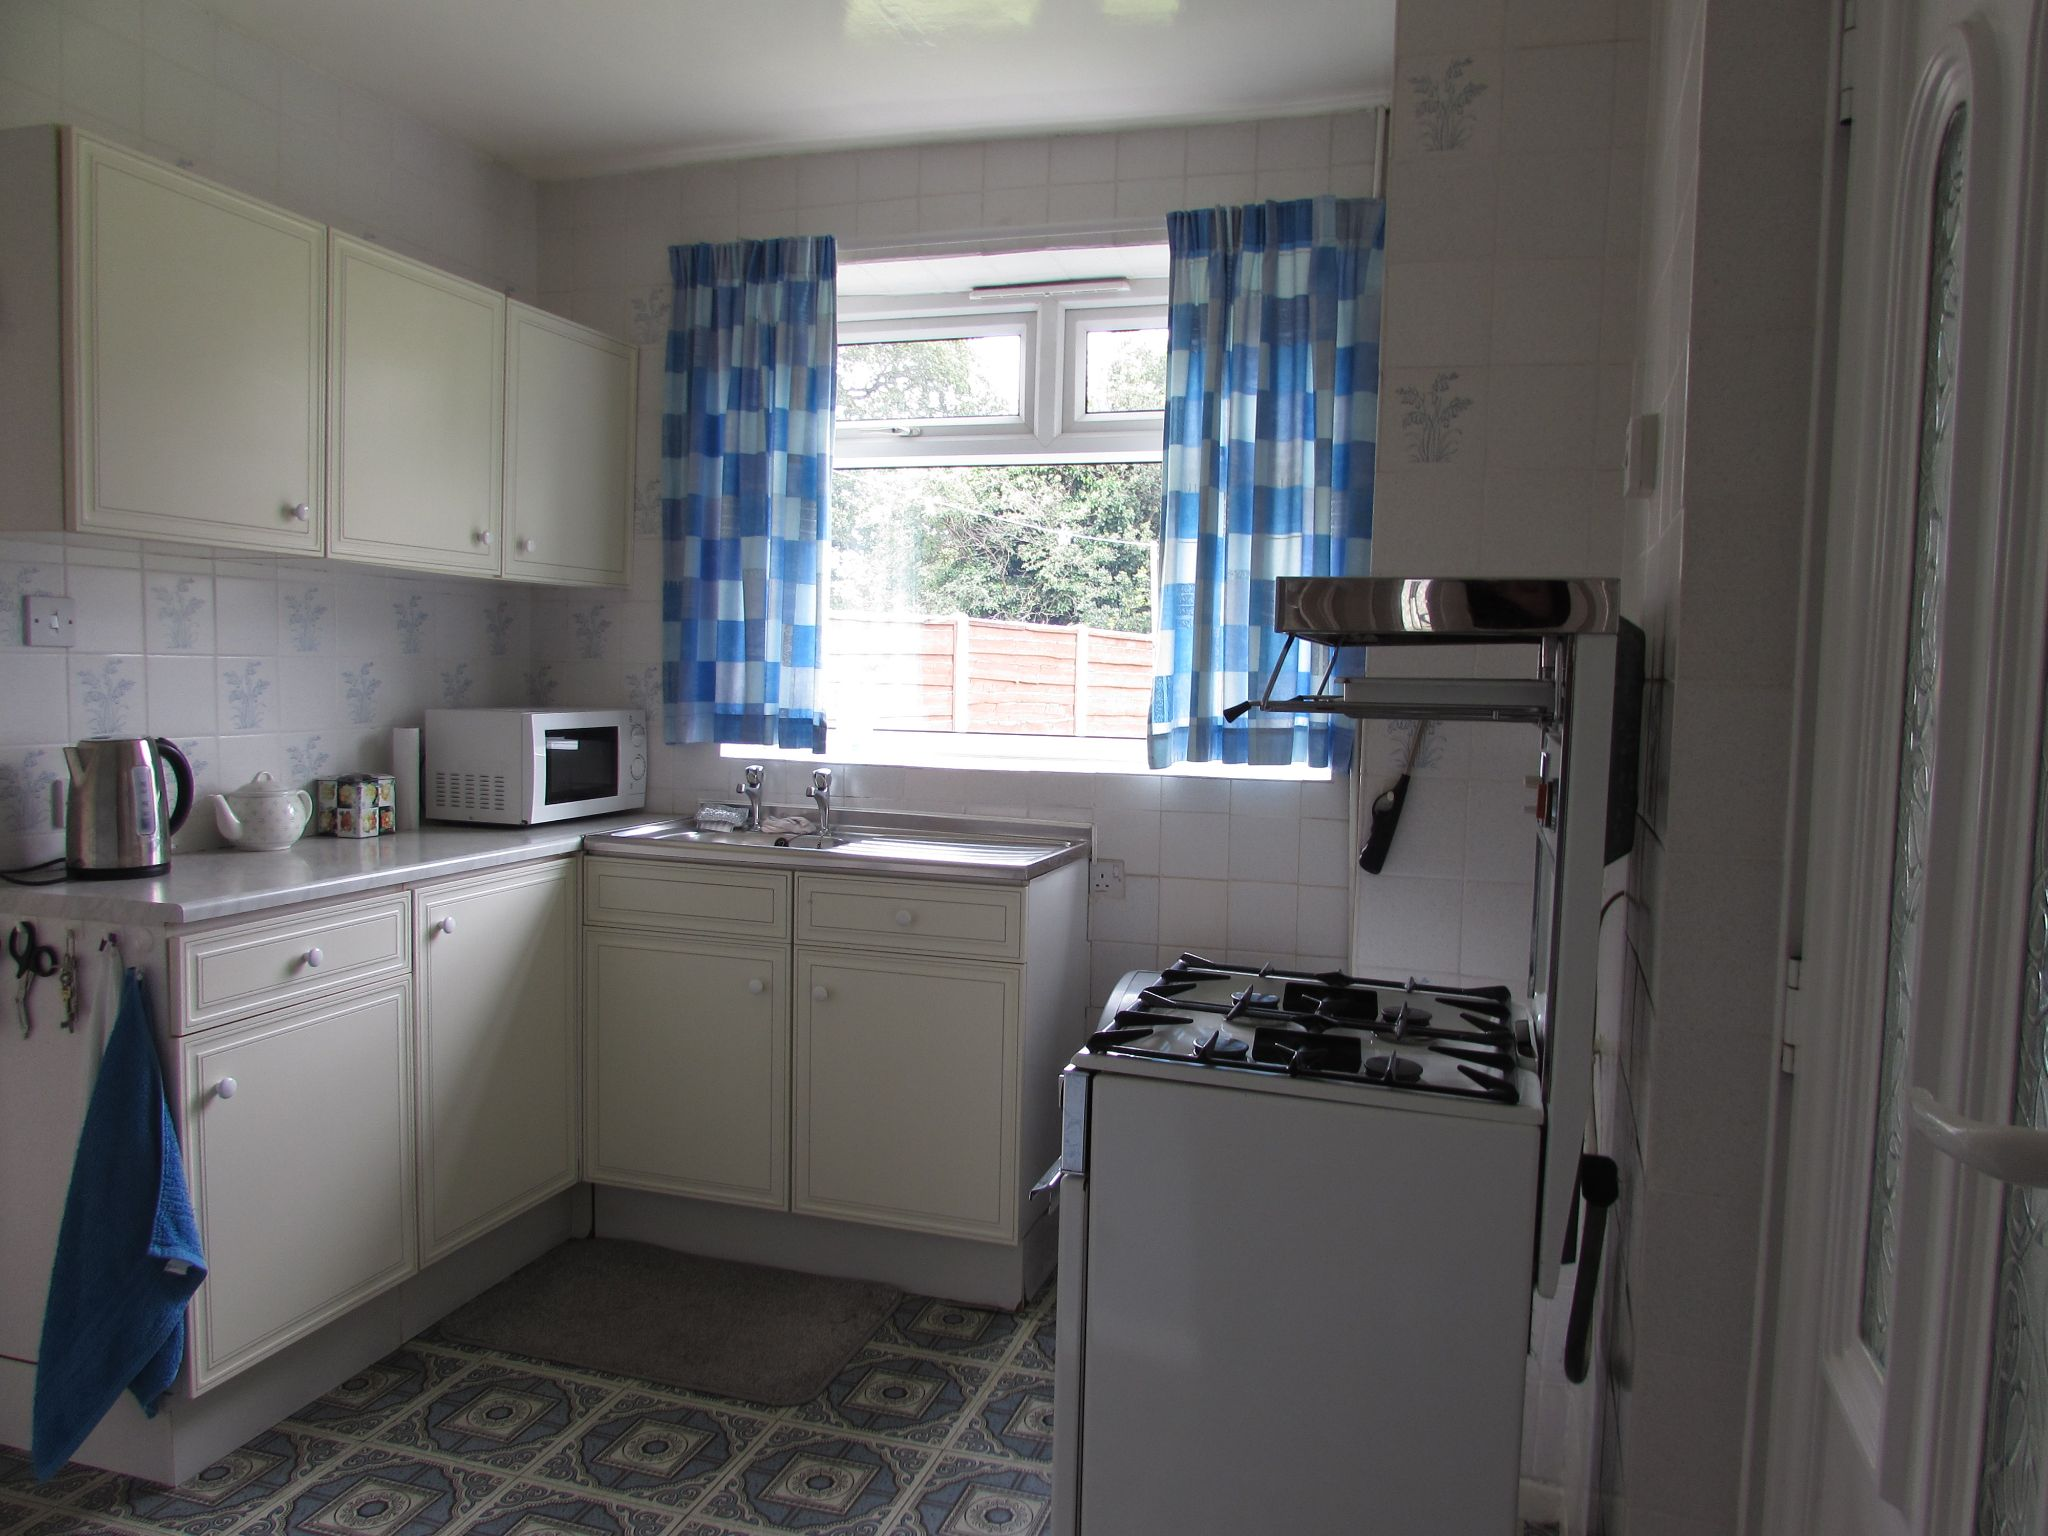 3 Bedroom End Terraced House For Sale - KITCHEN